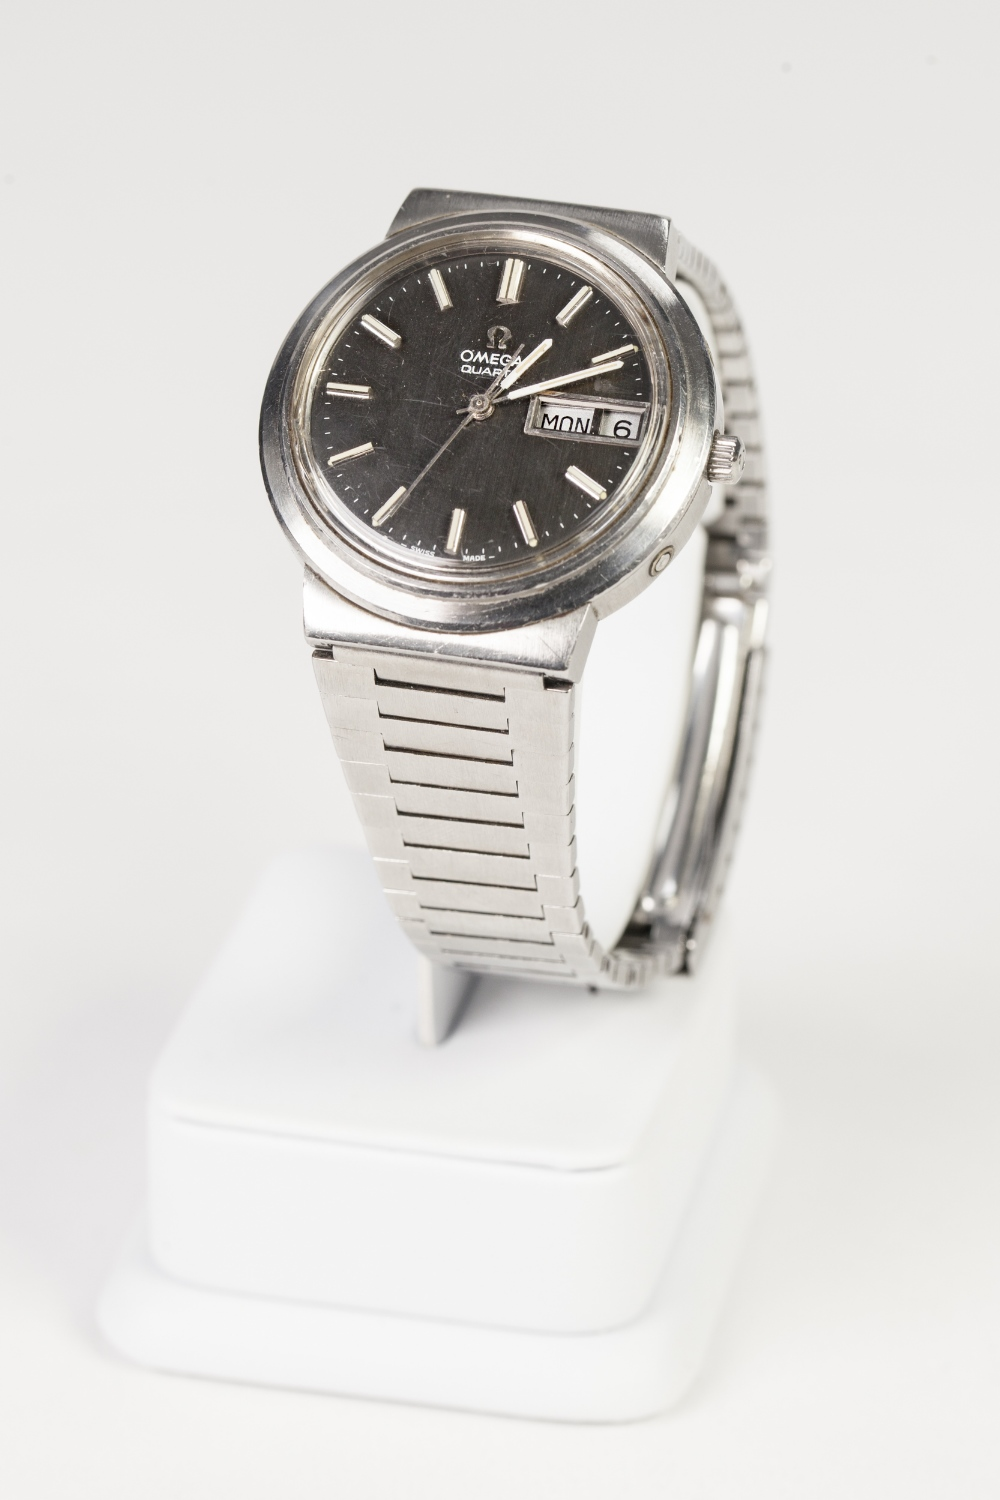 Lot 18 - GENTS OMEGA STAINLESS STEEL WRIST WATCH, with quartz movement, circular dial with batons, sweep